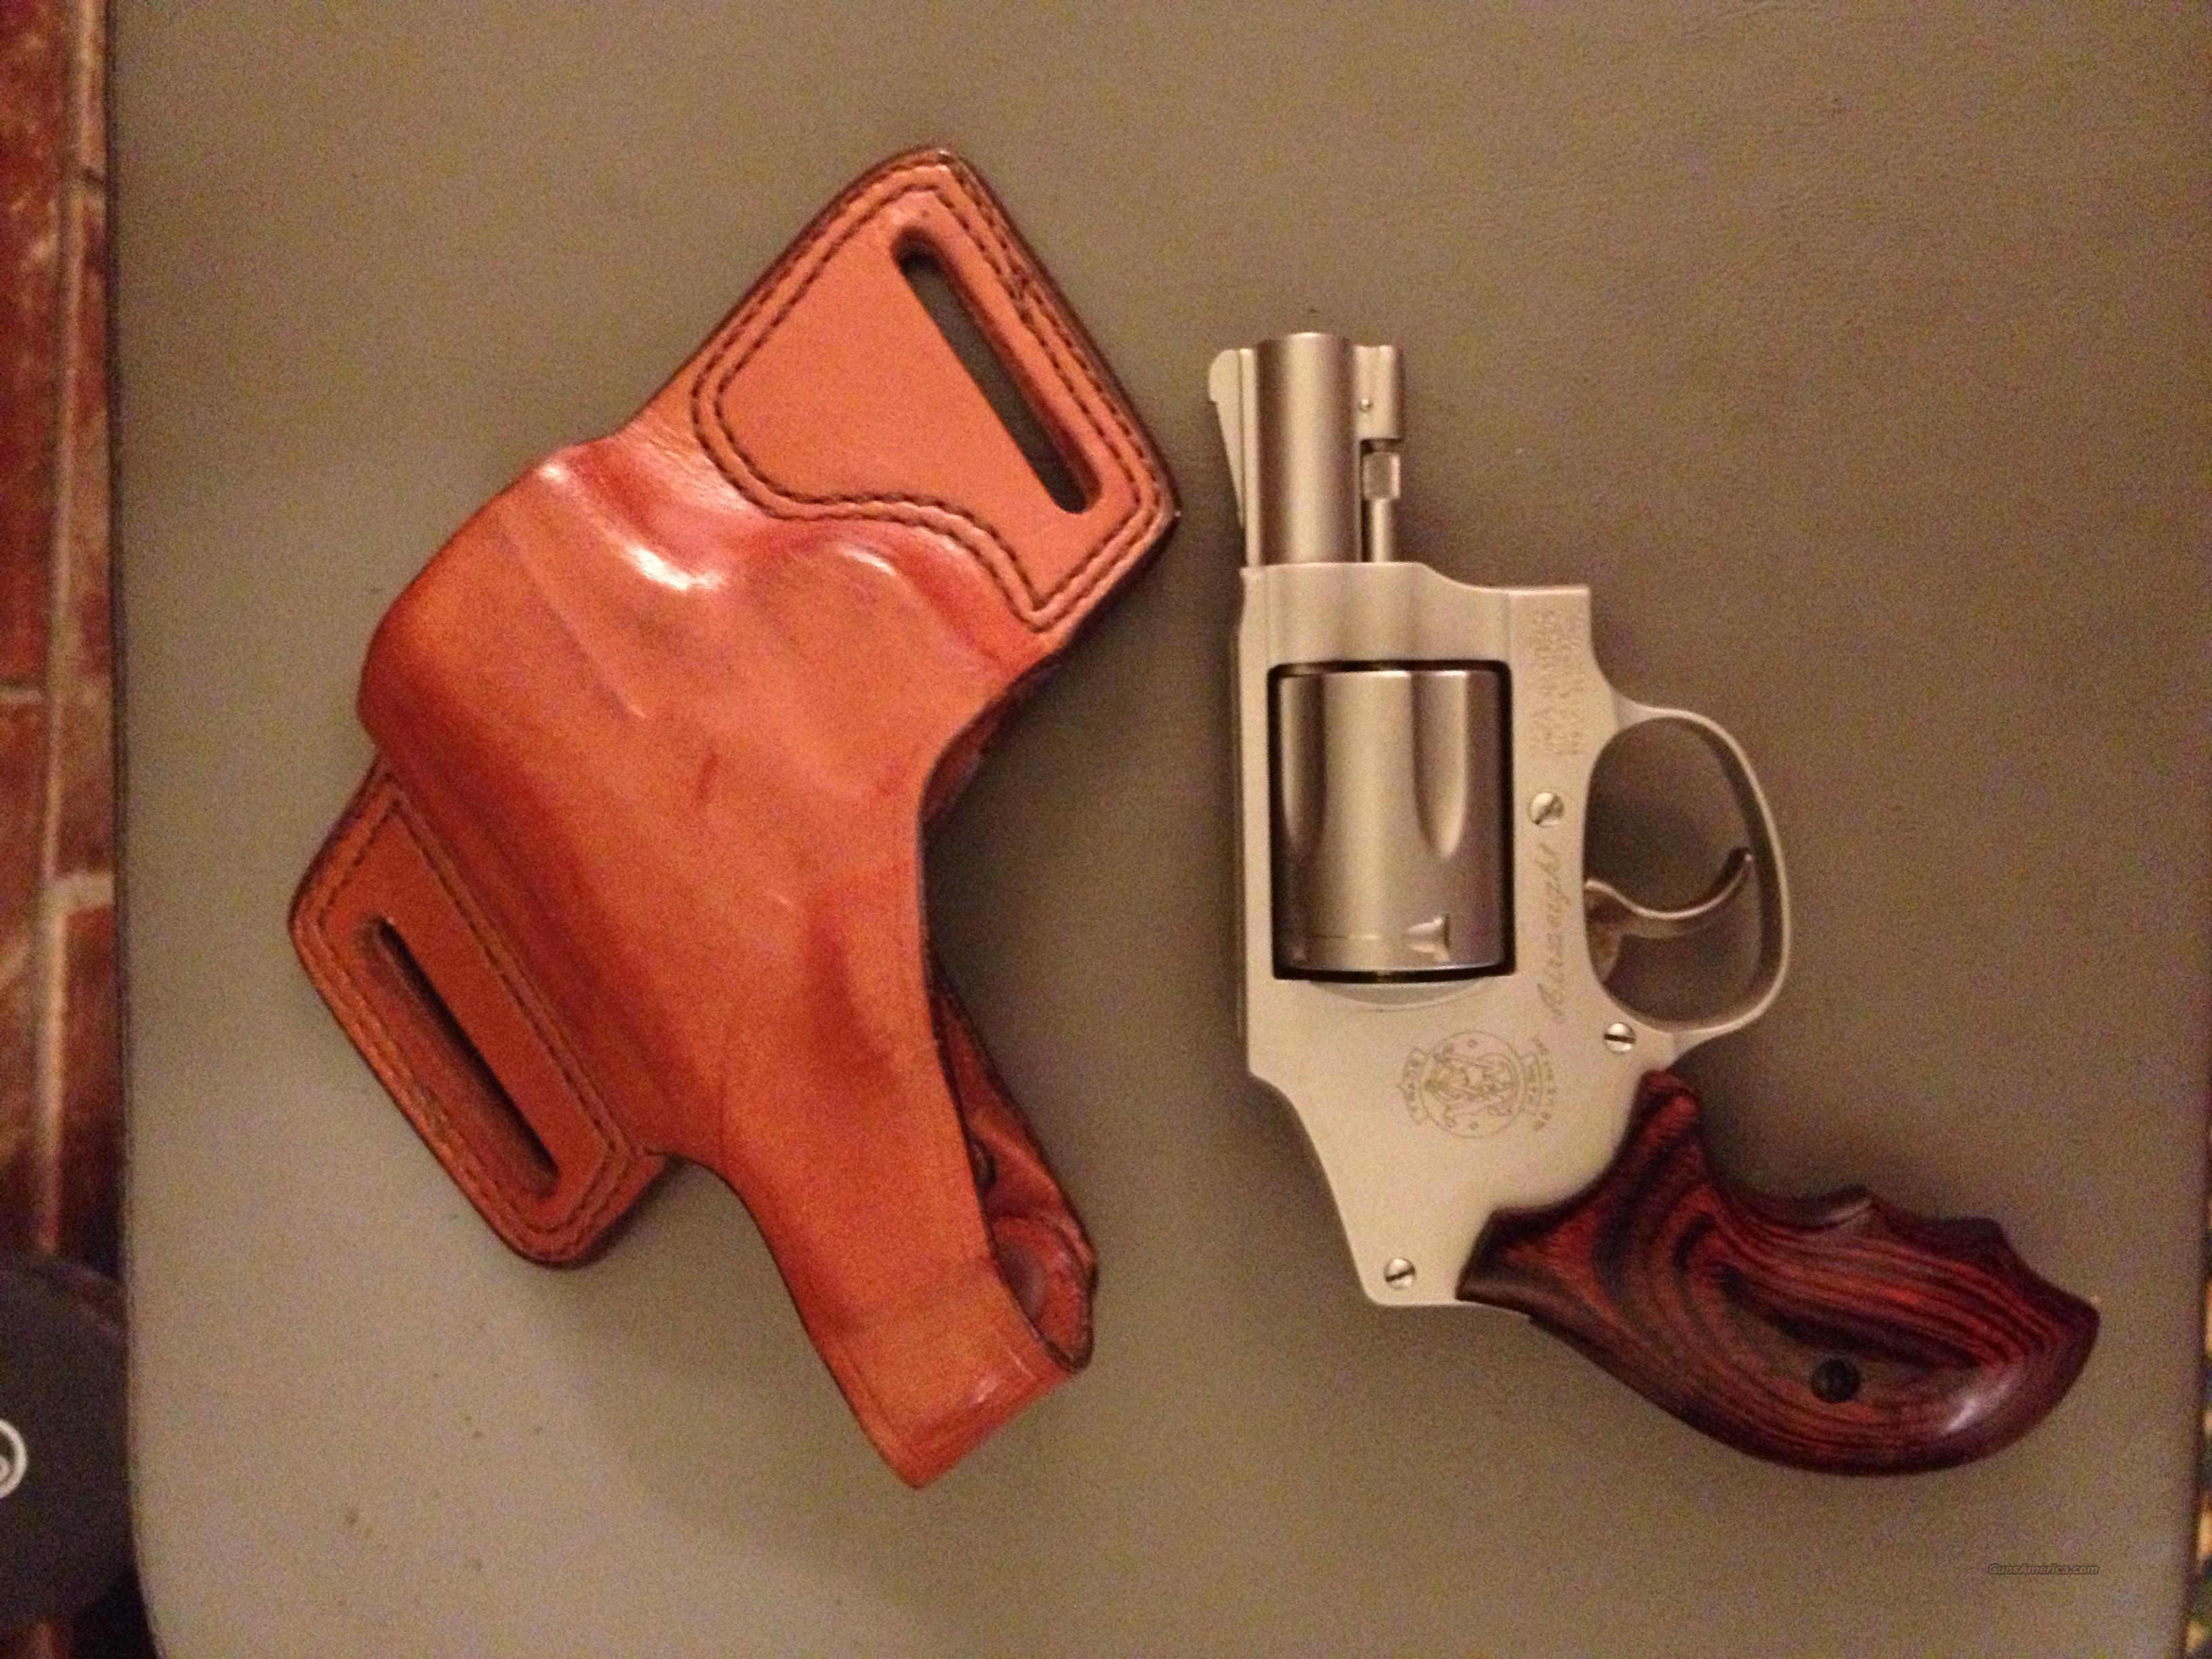 Smith & Wesson Airweight SPL +P  Guns > Pistols > Smith & Wesson Revolvers > Pocket Pistols